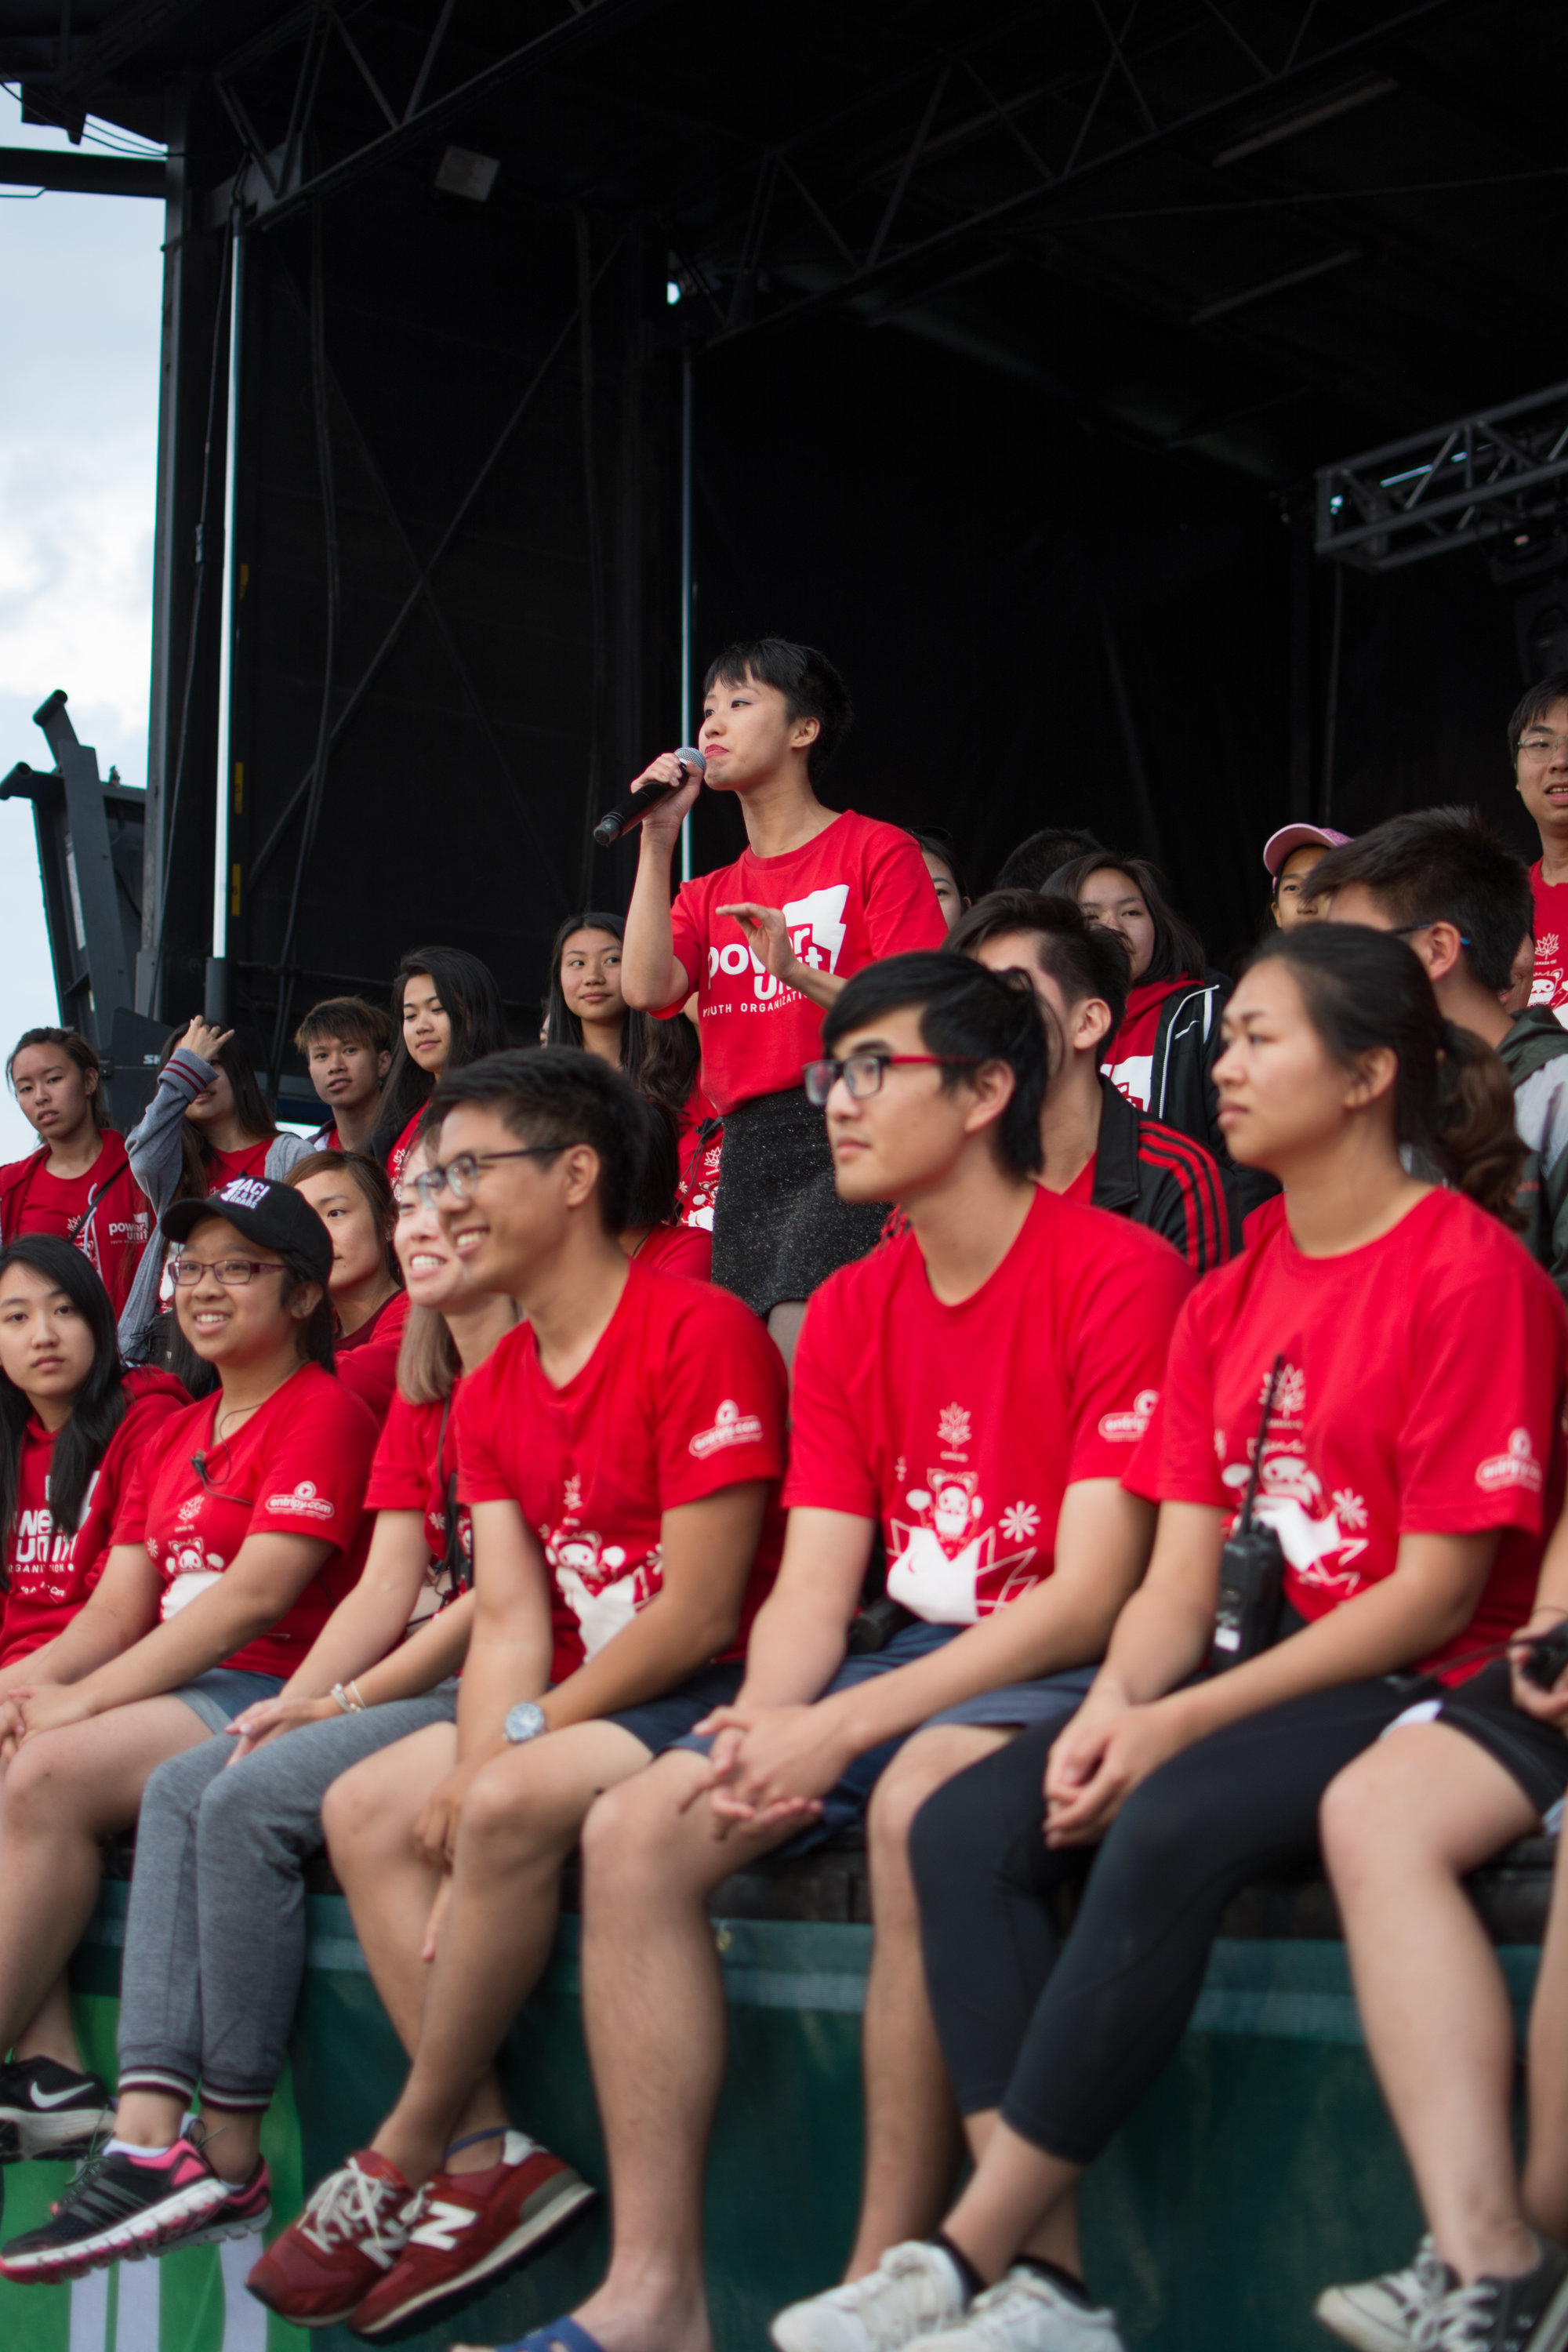 Group of participants at a charity event wearing red custom printed t-shirts.